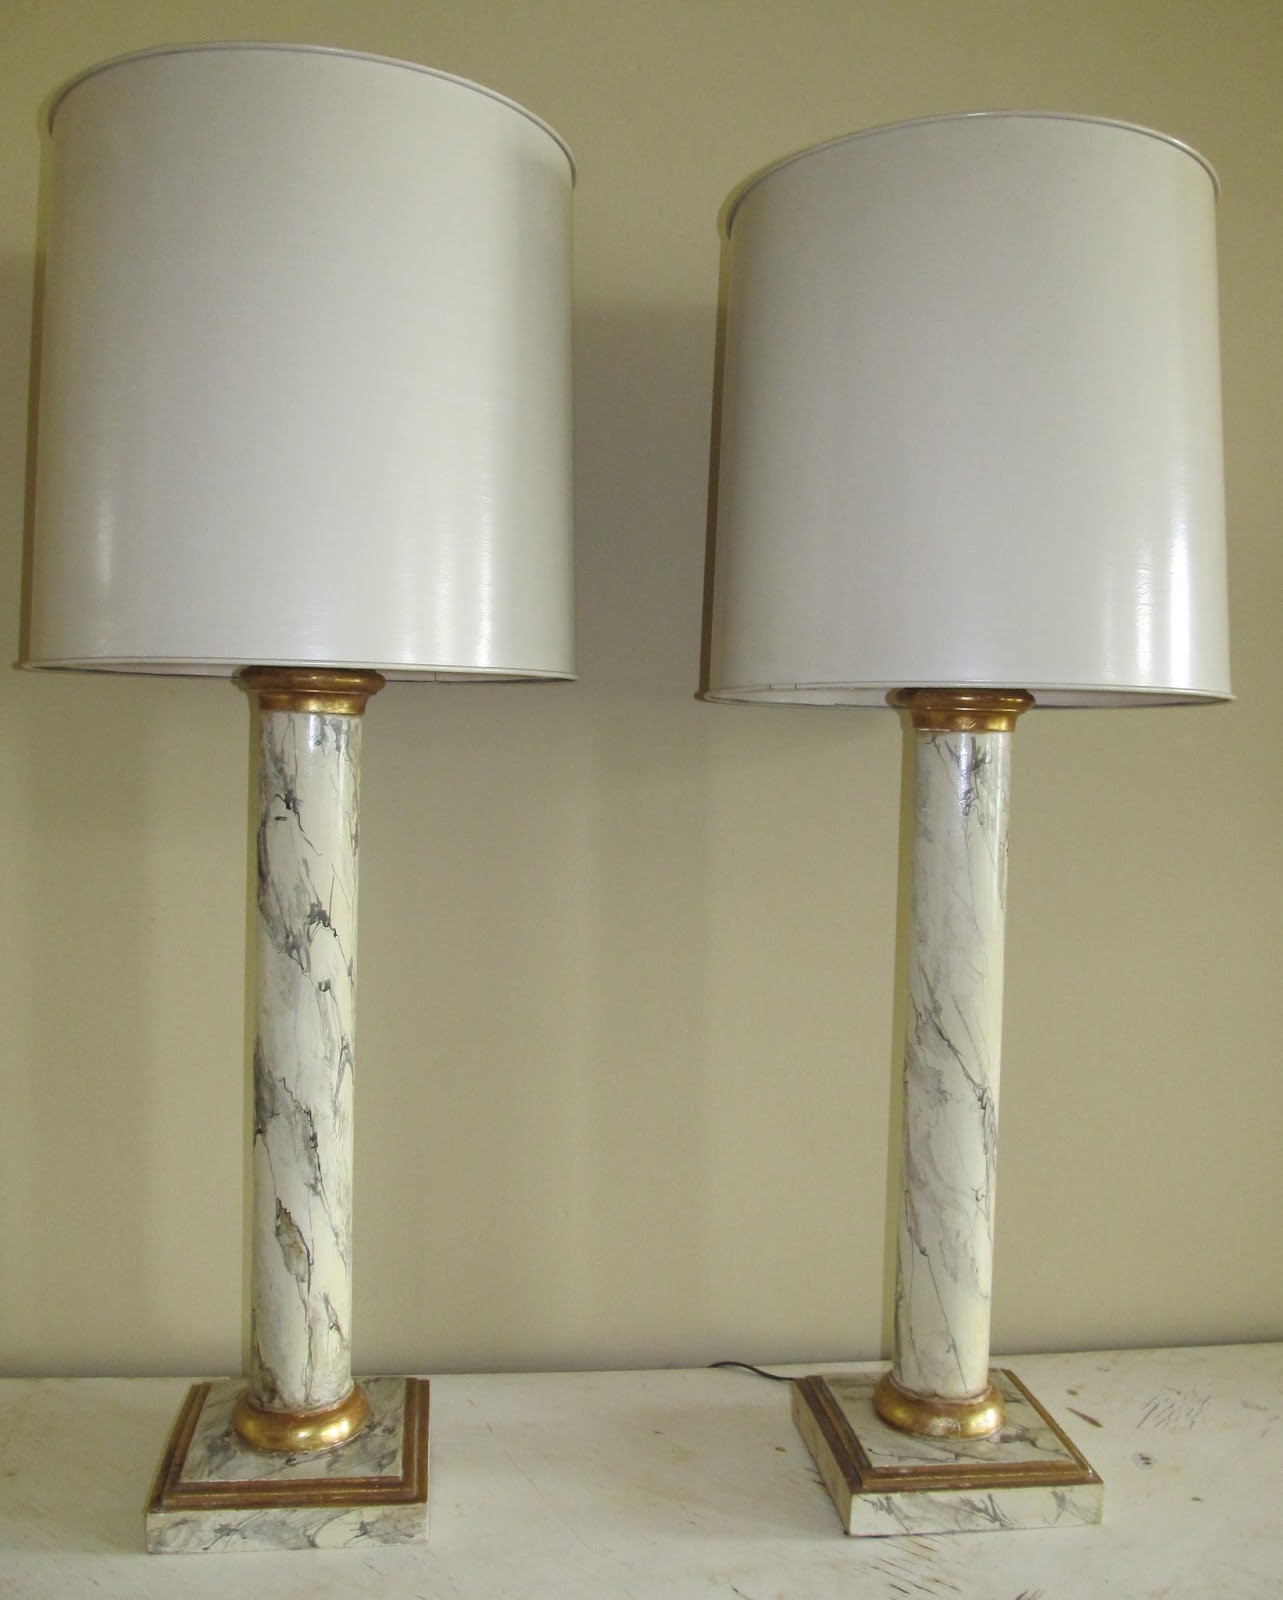 25.5 Inches Tall To Base Of Socket. Bases Are 8 Inches Square. Shades Are  16 Inches In Diameter.